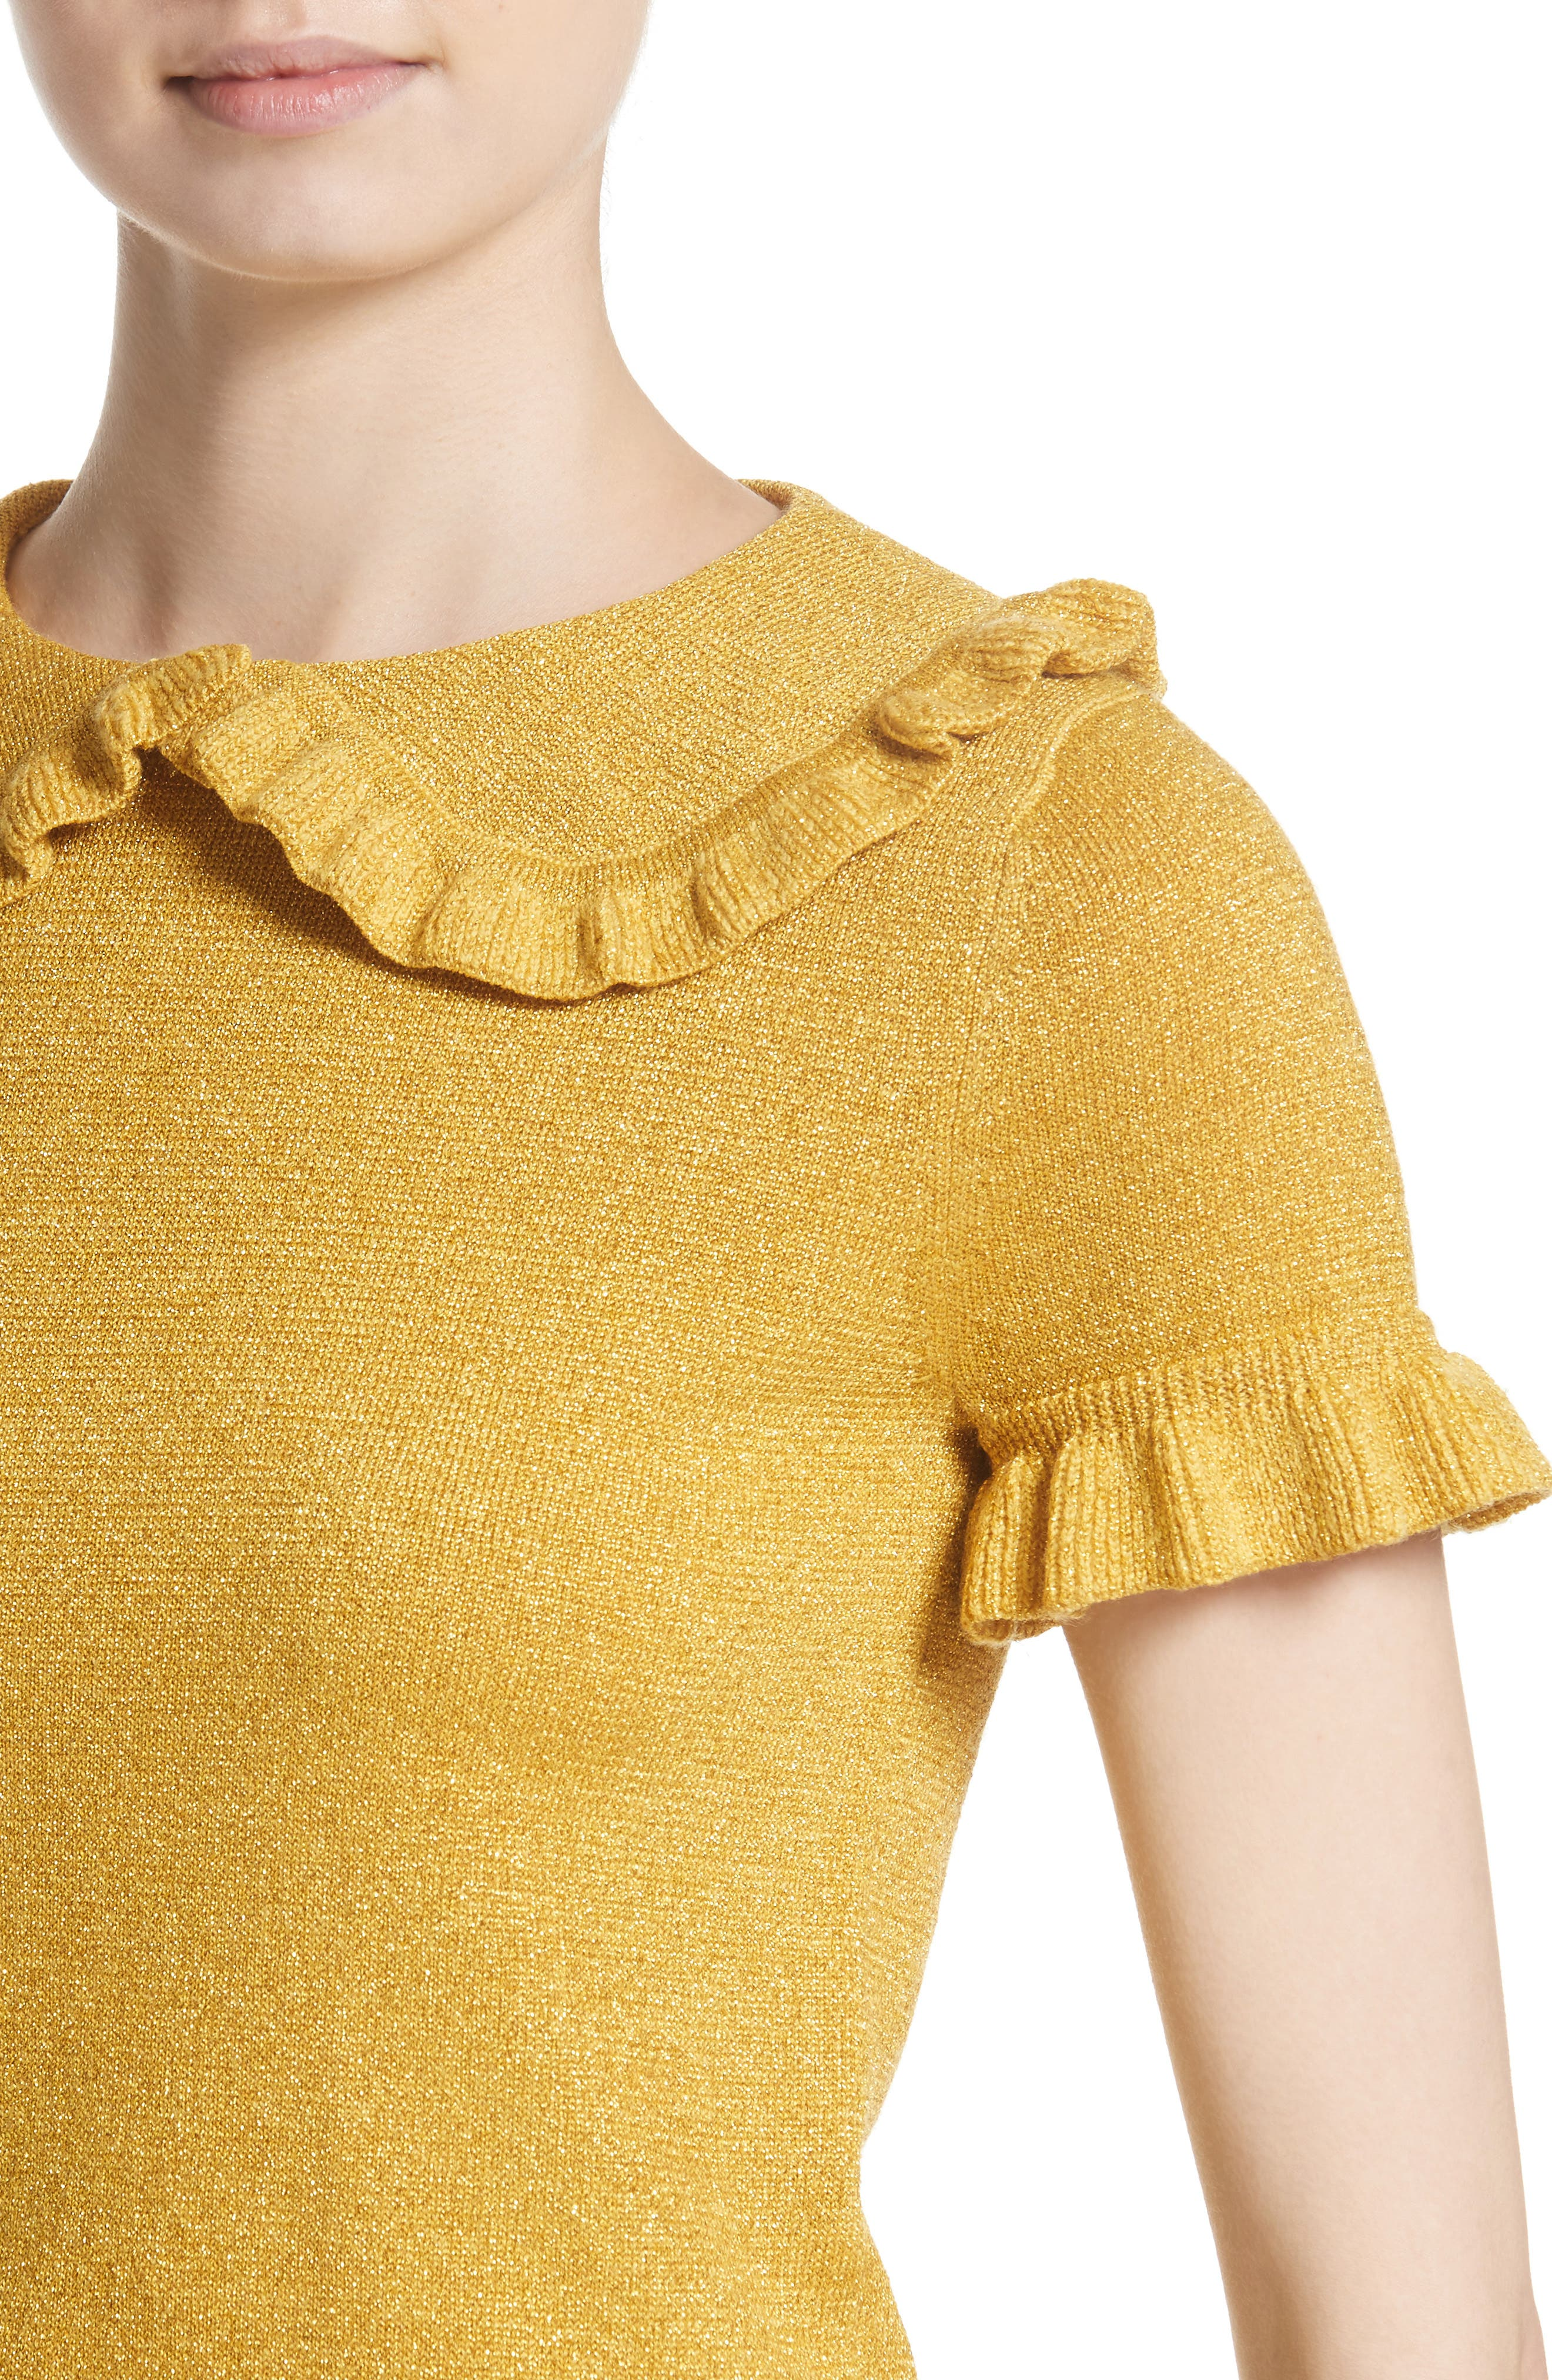 Campbell Frill Metallic Sweater,                             Alternate thumbnail 4, color,                             700